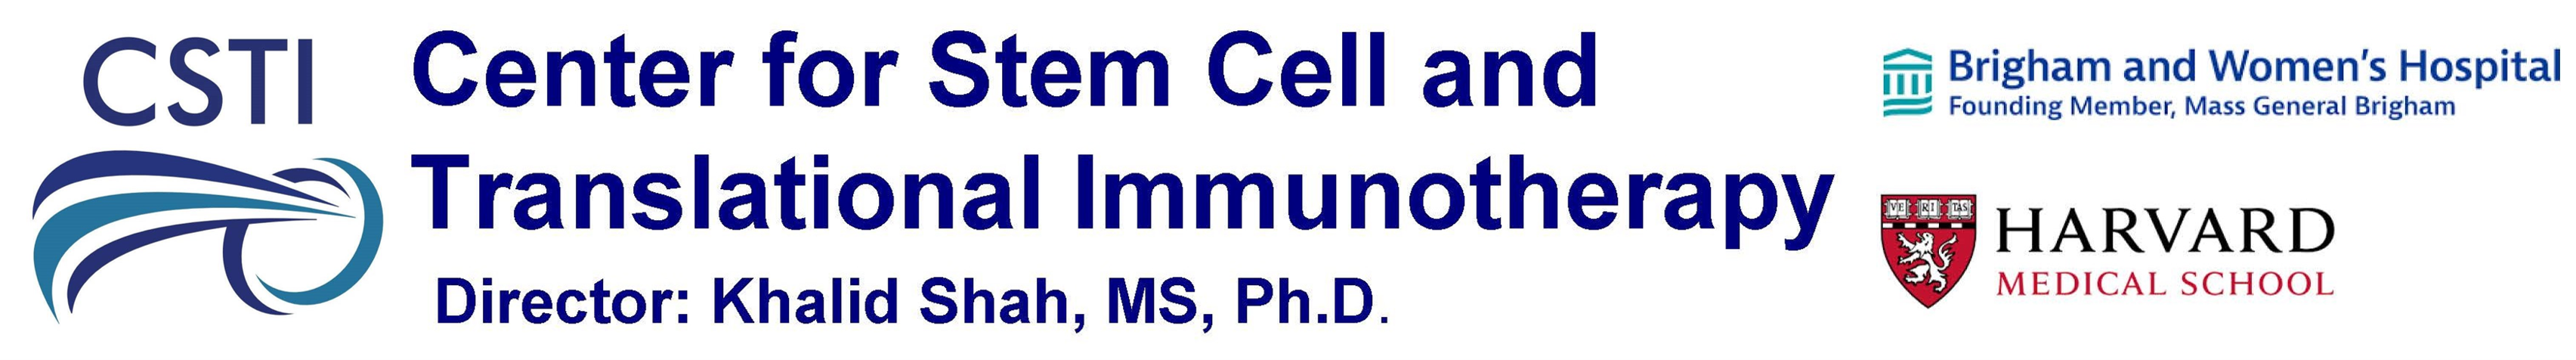 Center for Stem Cell and Translational Immunotherapy (CSTI)